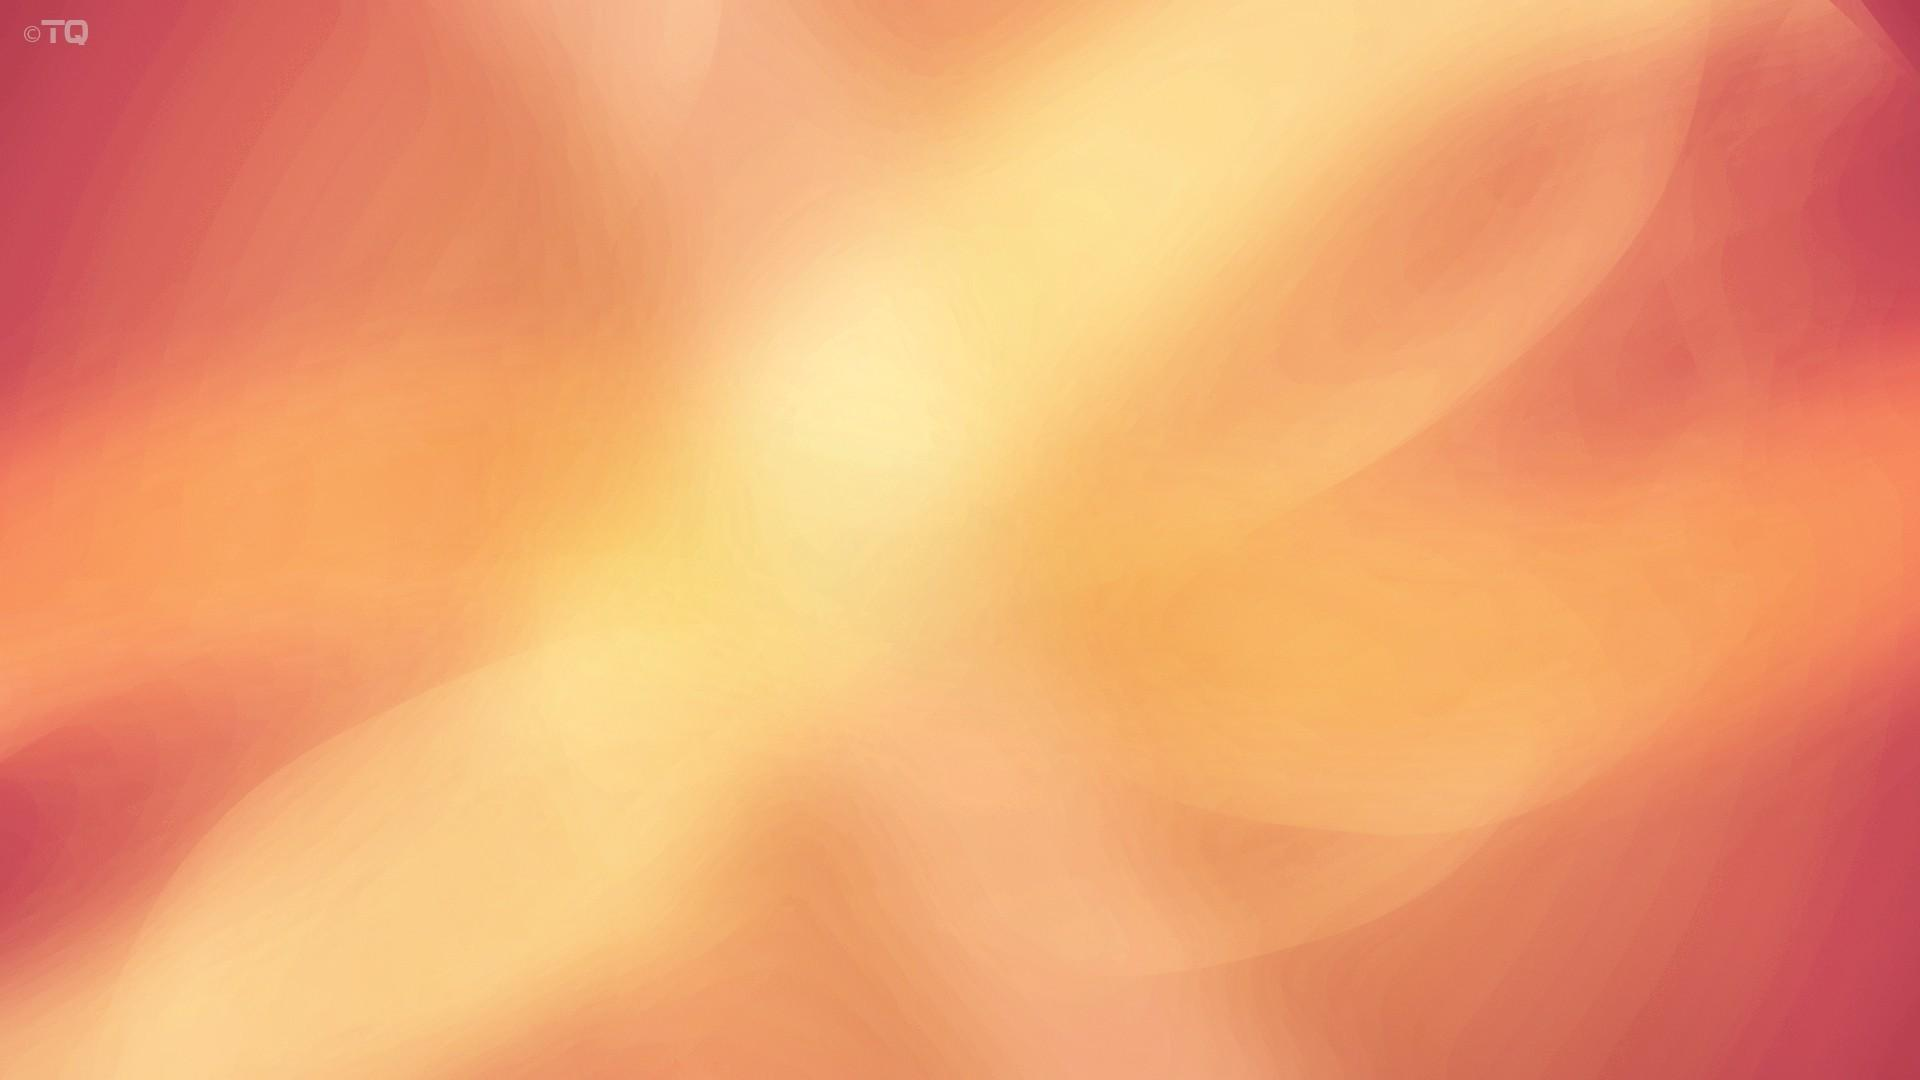 Abstract backgrounds bright light orange wallpaper 65973 1920x1080